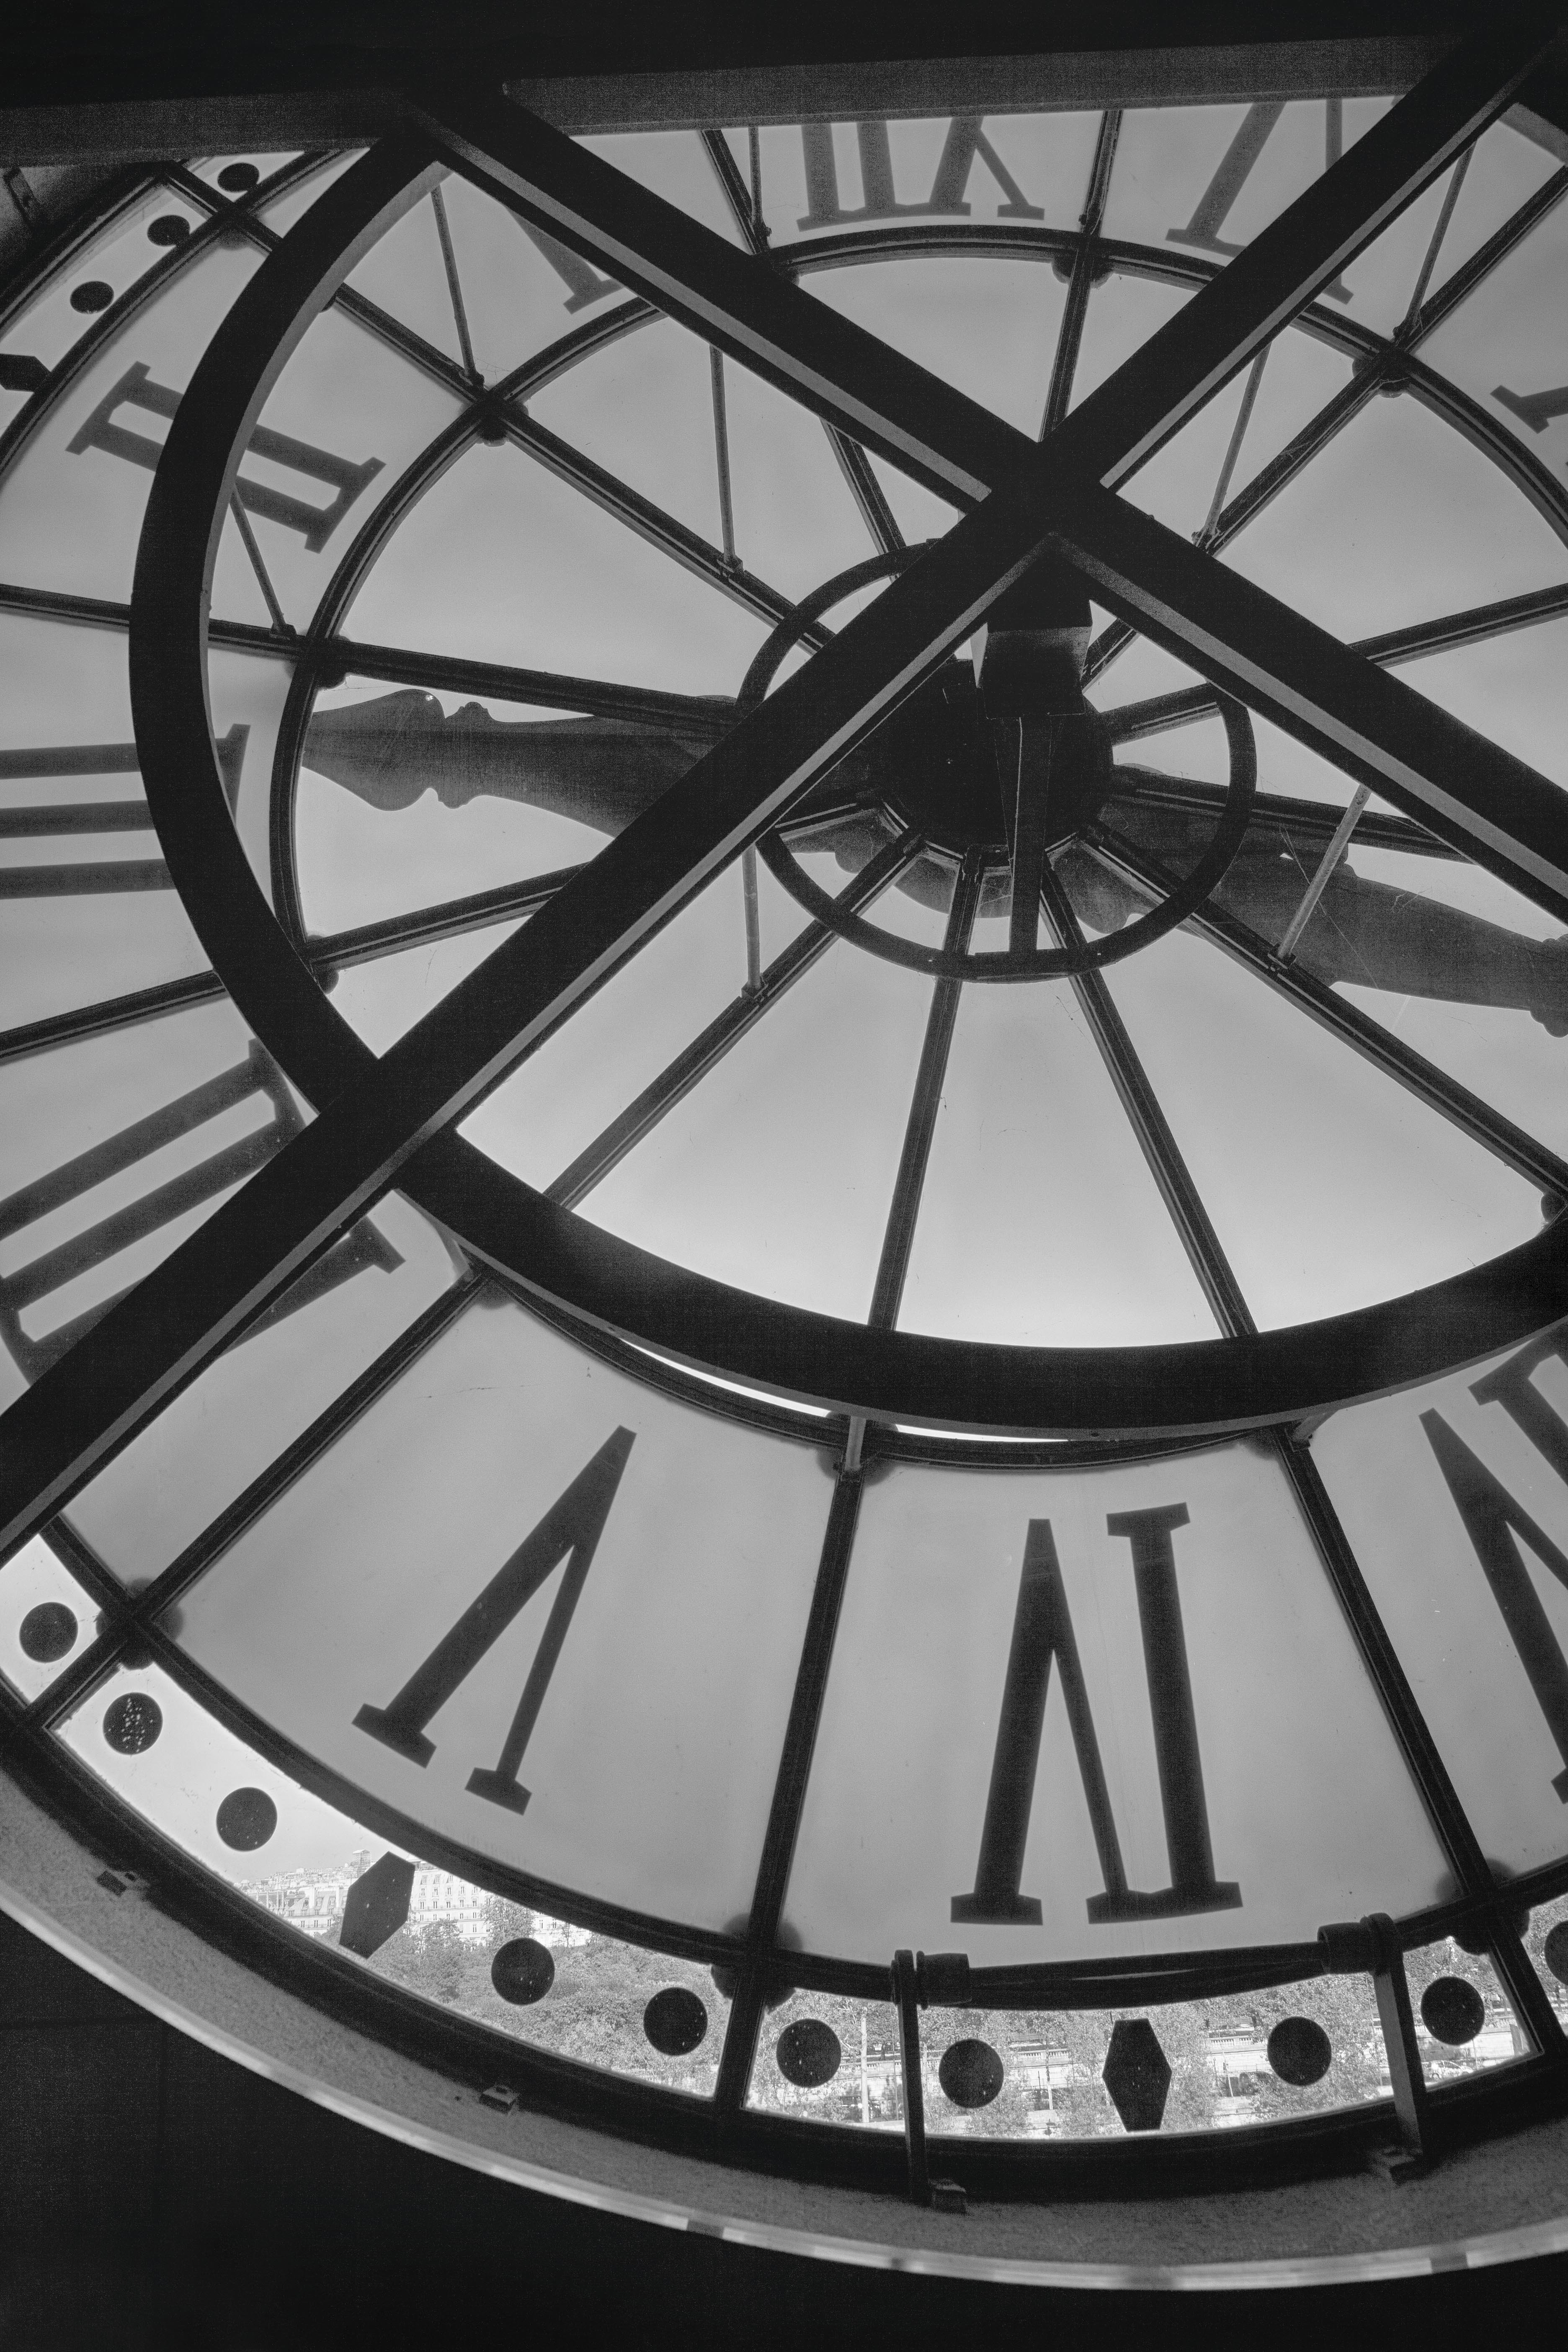 D'Orsay Clock Face